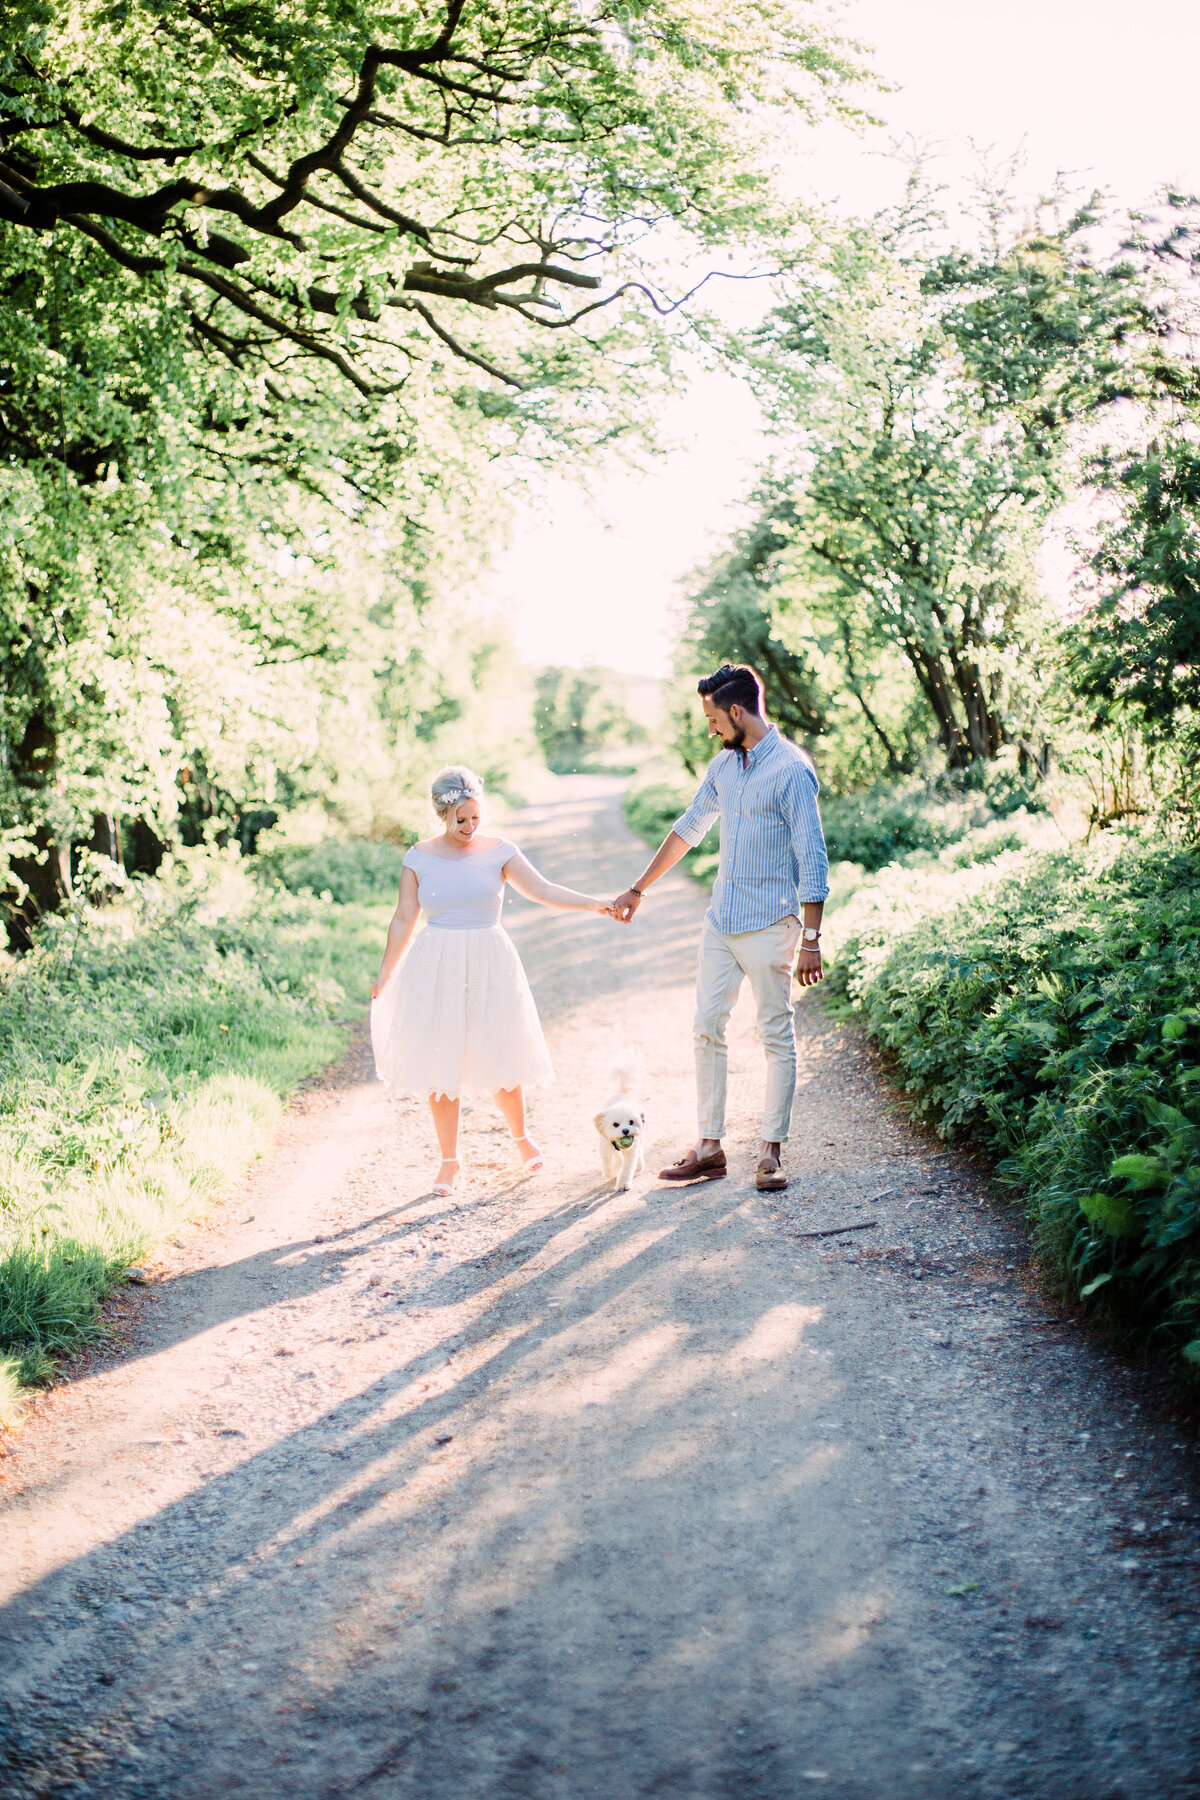 tabithastarkphototyorkshireweddingphotographer-26